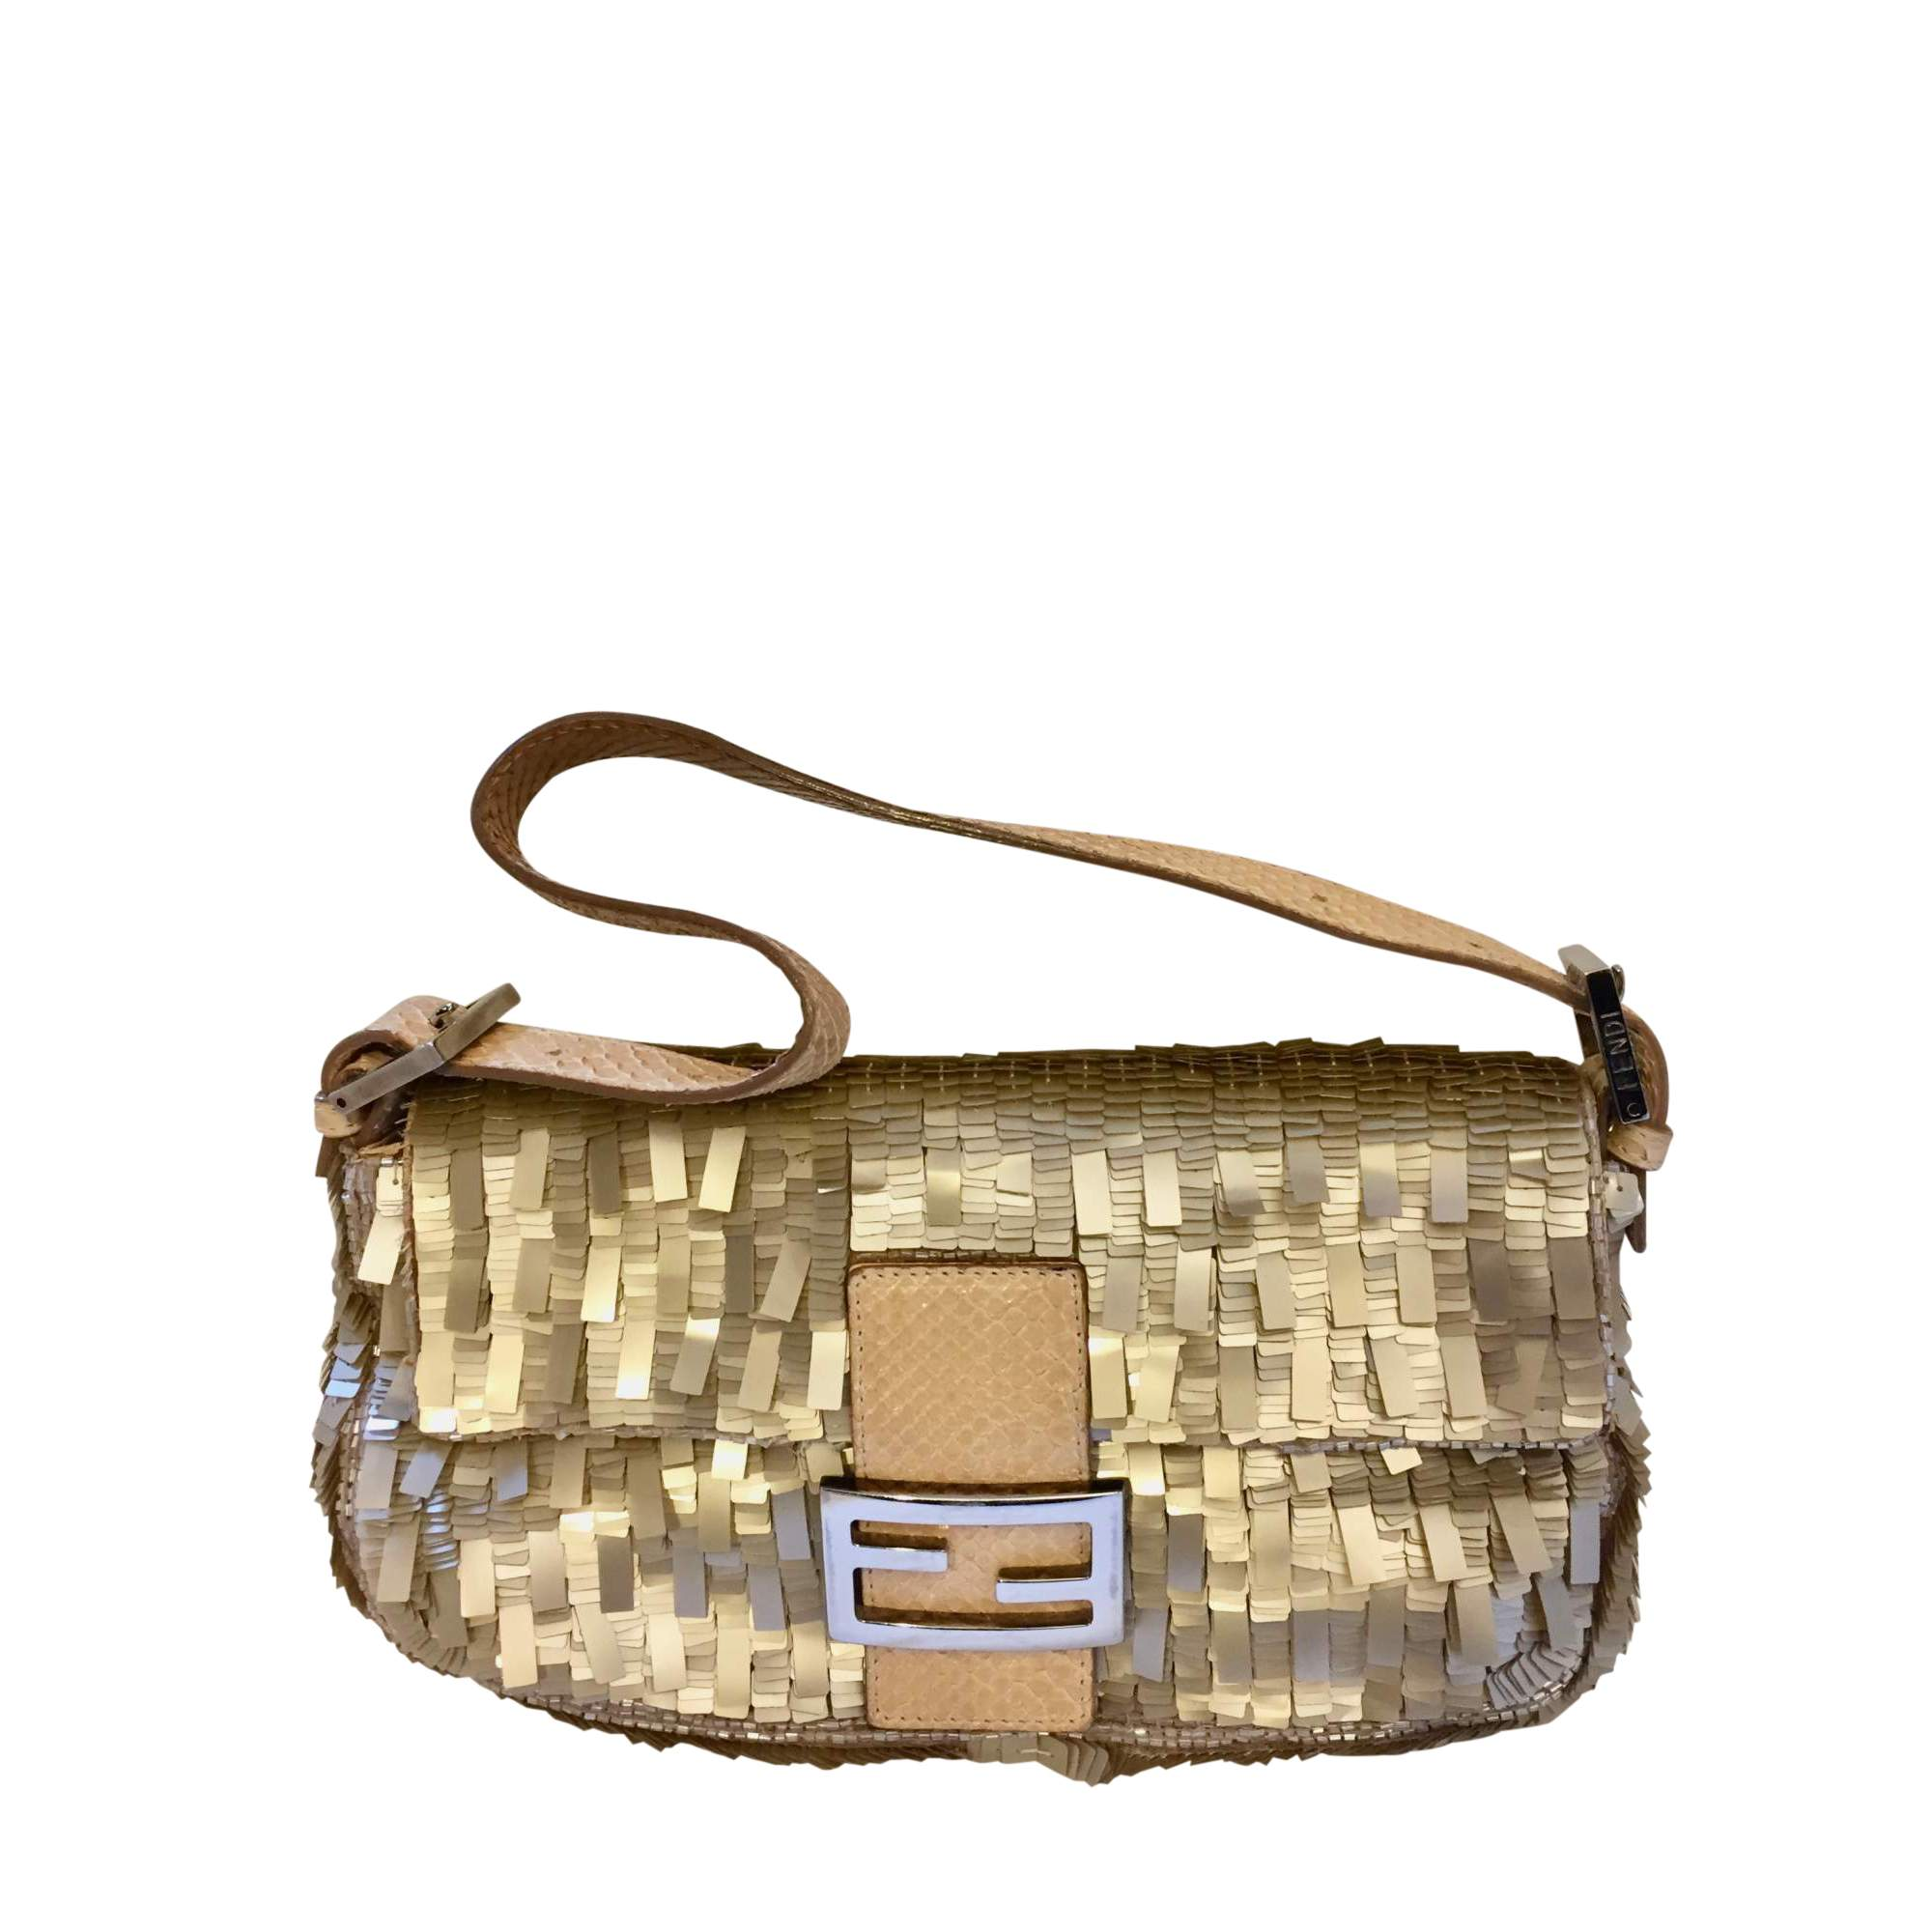 11cafe1e311 Fendi Baguette Sequin Bag   The Chic Selection